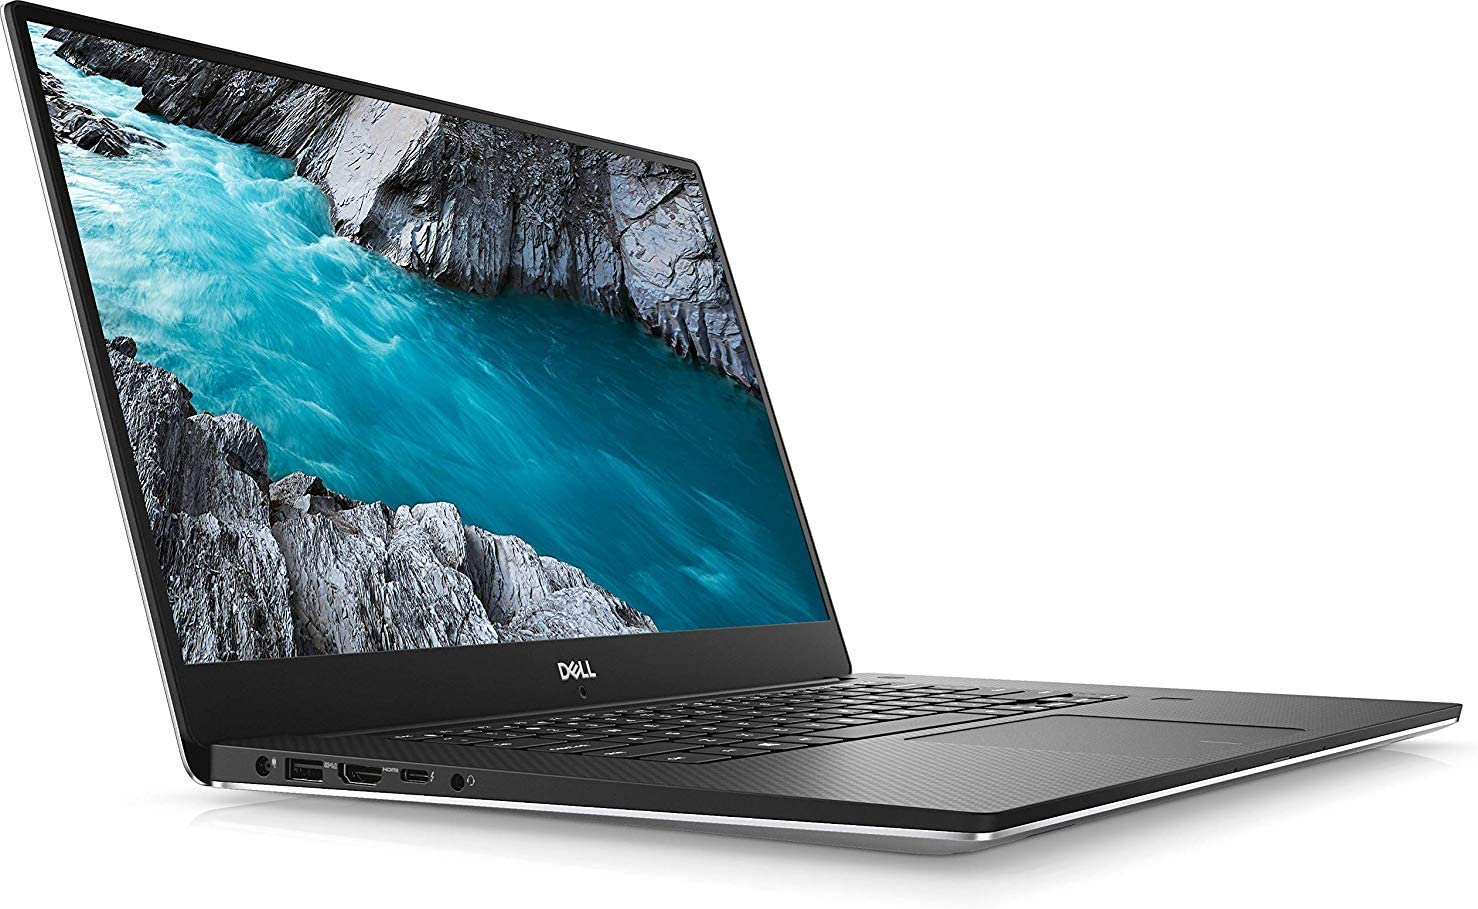 Dell XPS 15 9570 Gaming Laptop i9-8950HK GTX 1050Ti 4GB 15.6in 4K UHD Anti-Reflective Touch 2TB SSD | 32GB RAM | Win 10 PRO 64Bit (Renewed)